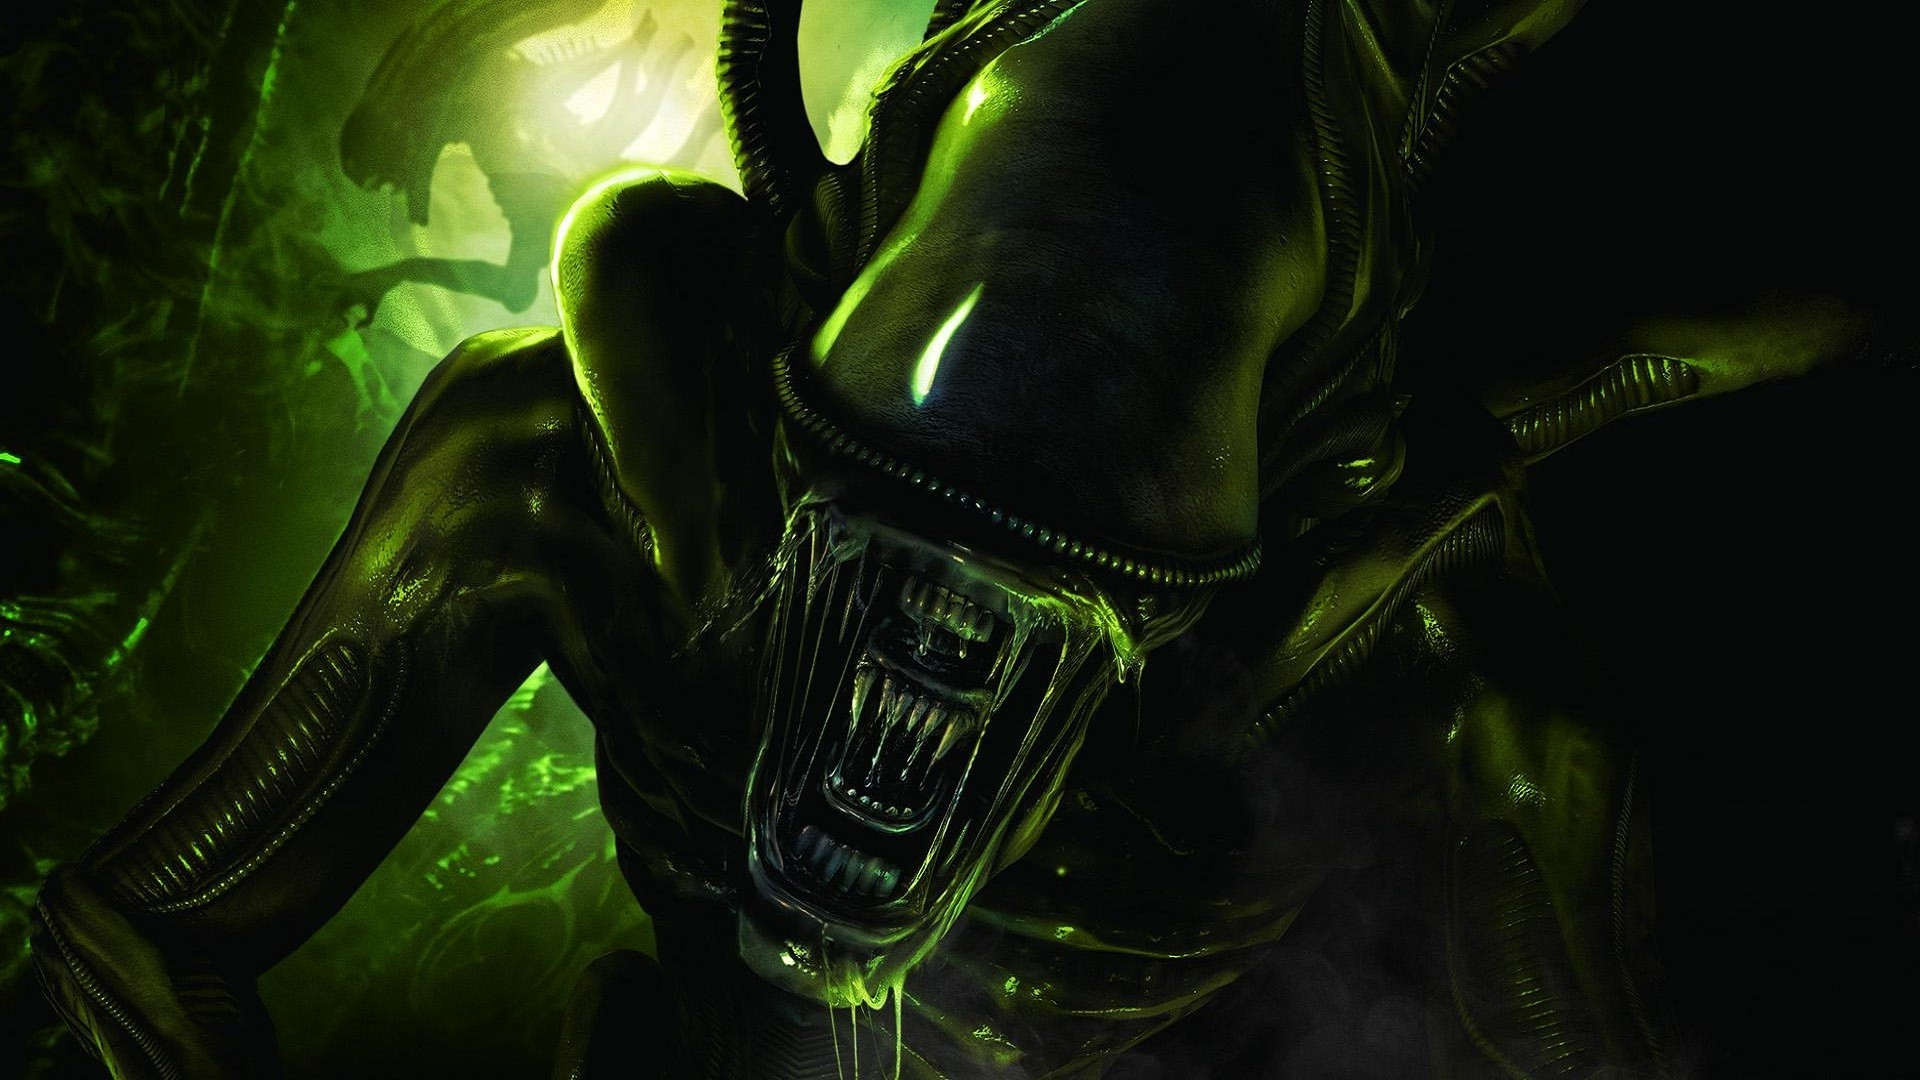 Alien wallpaper 5819 1920x1080